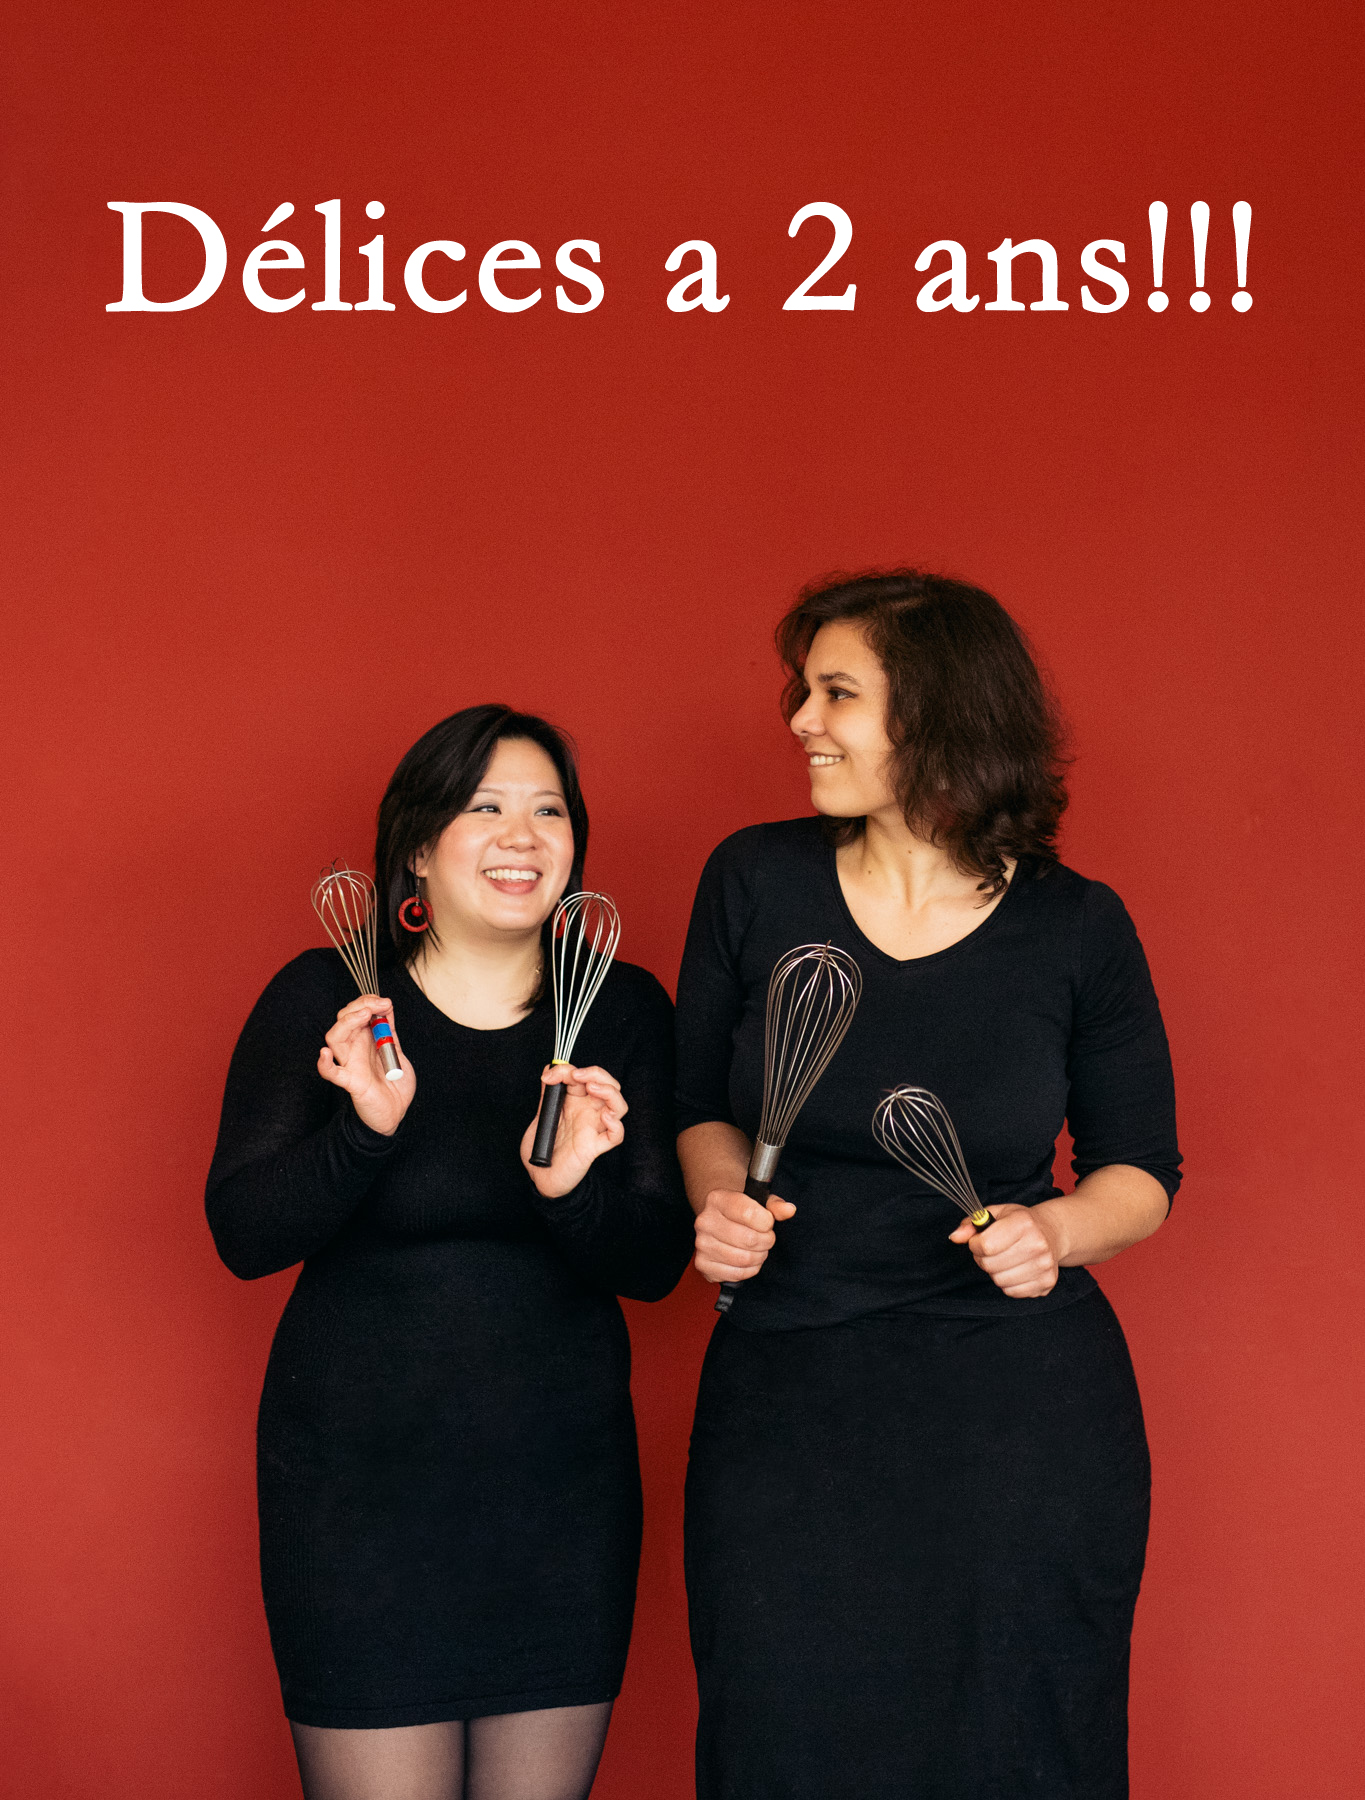 Happy Birthday Délices!